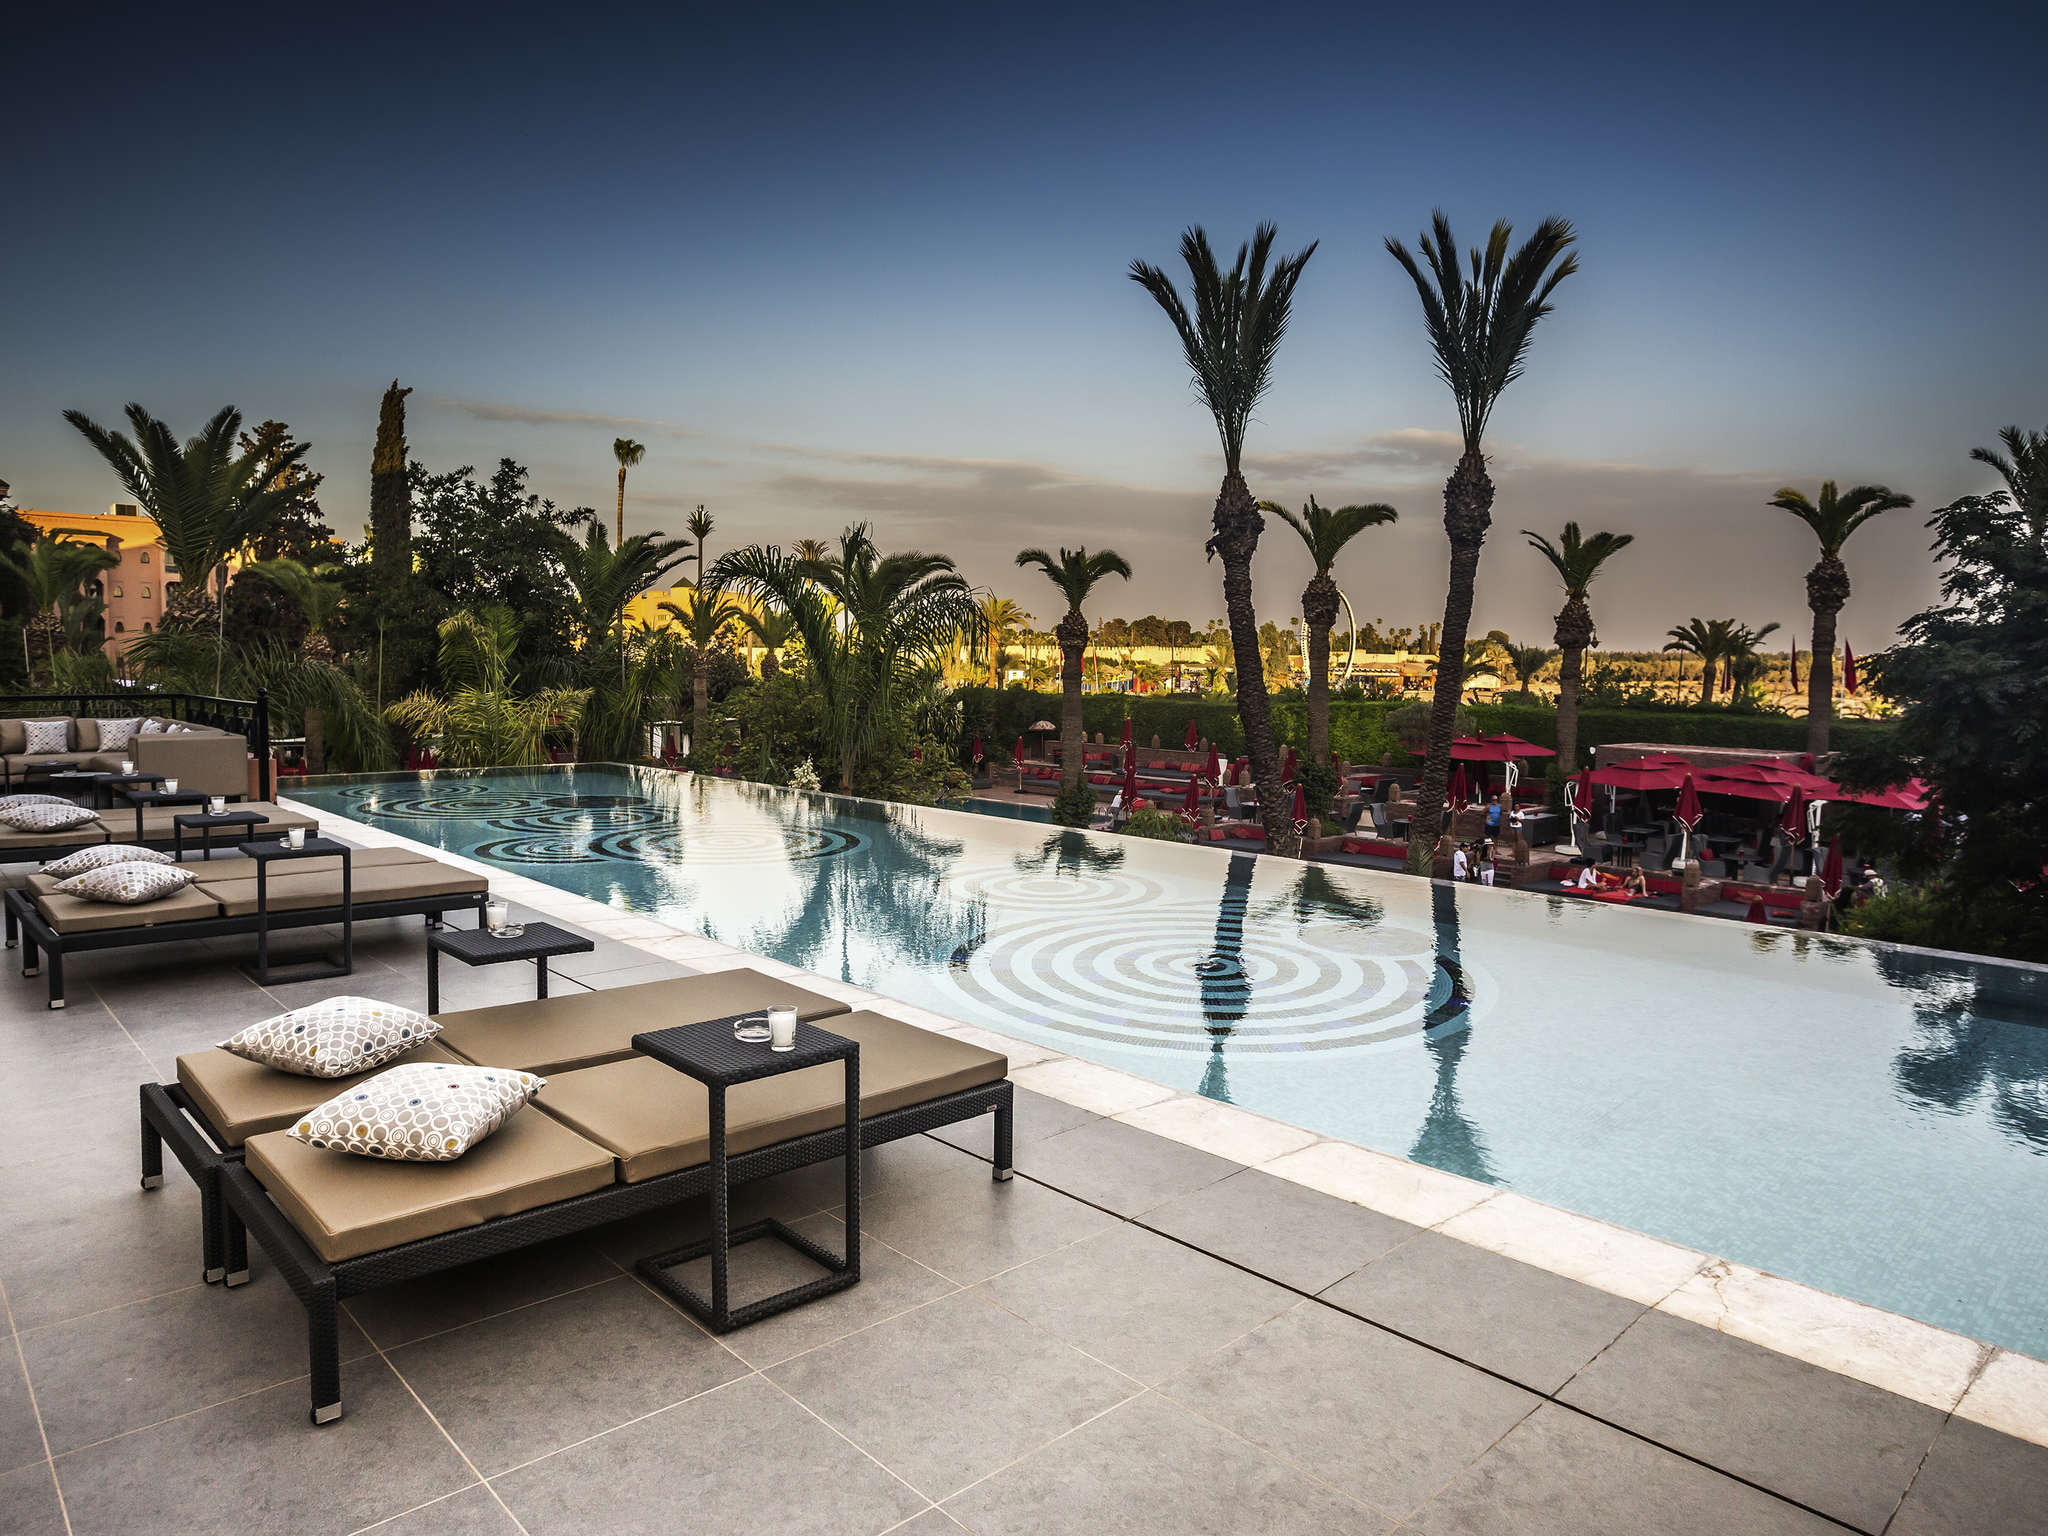 Hotel – Sofitel Marrakech Lounge and Spa